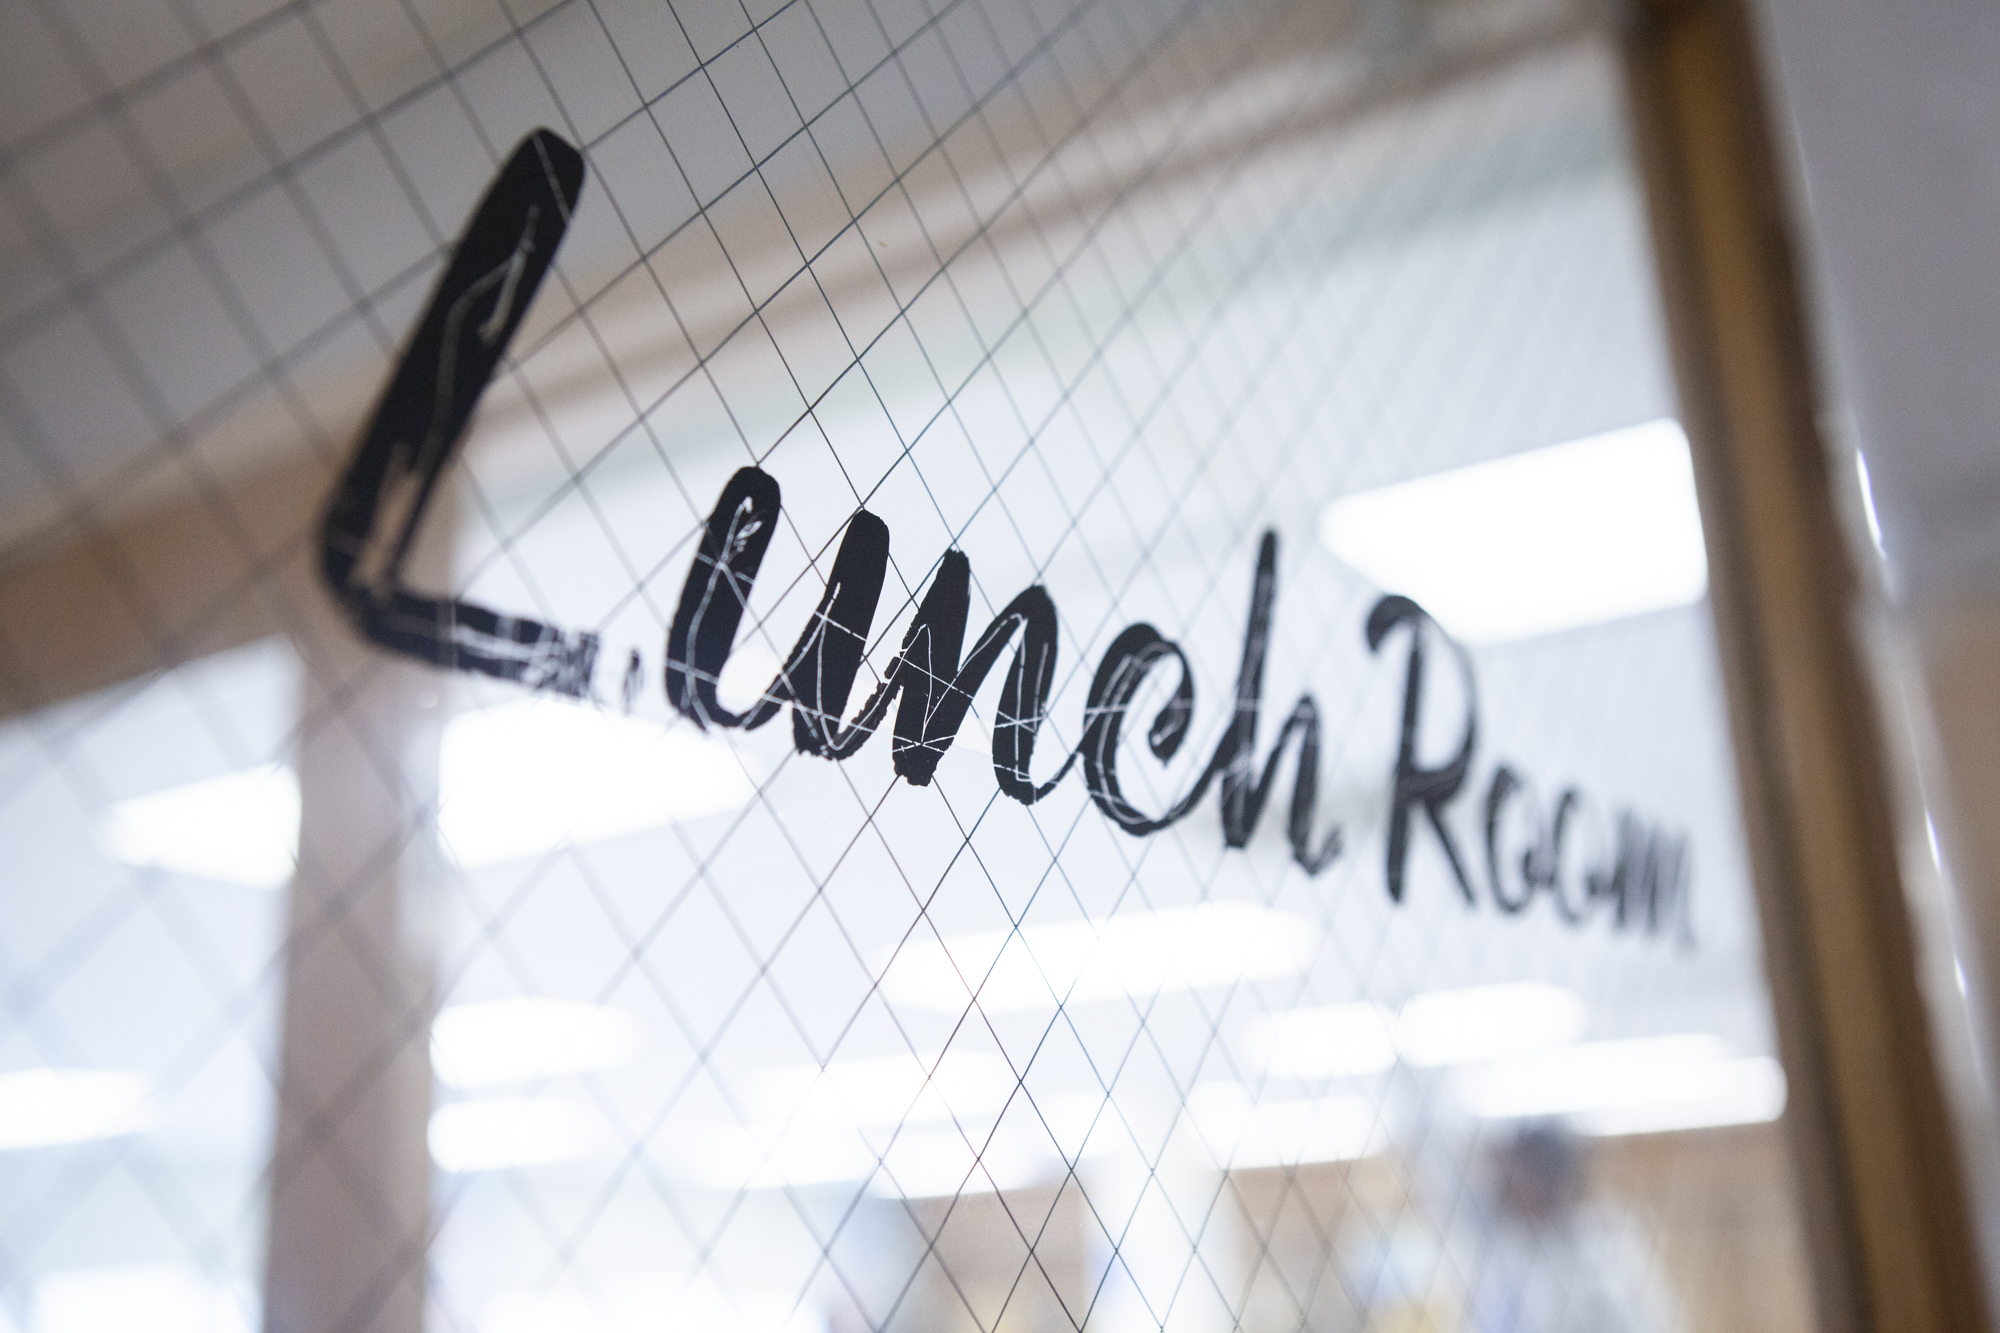 A door that is labeled Lunch Room.